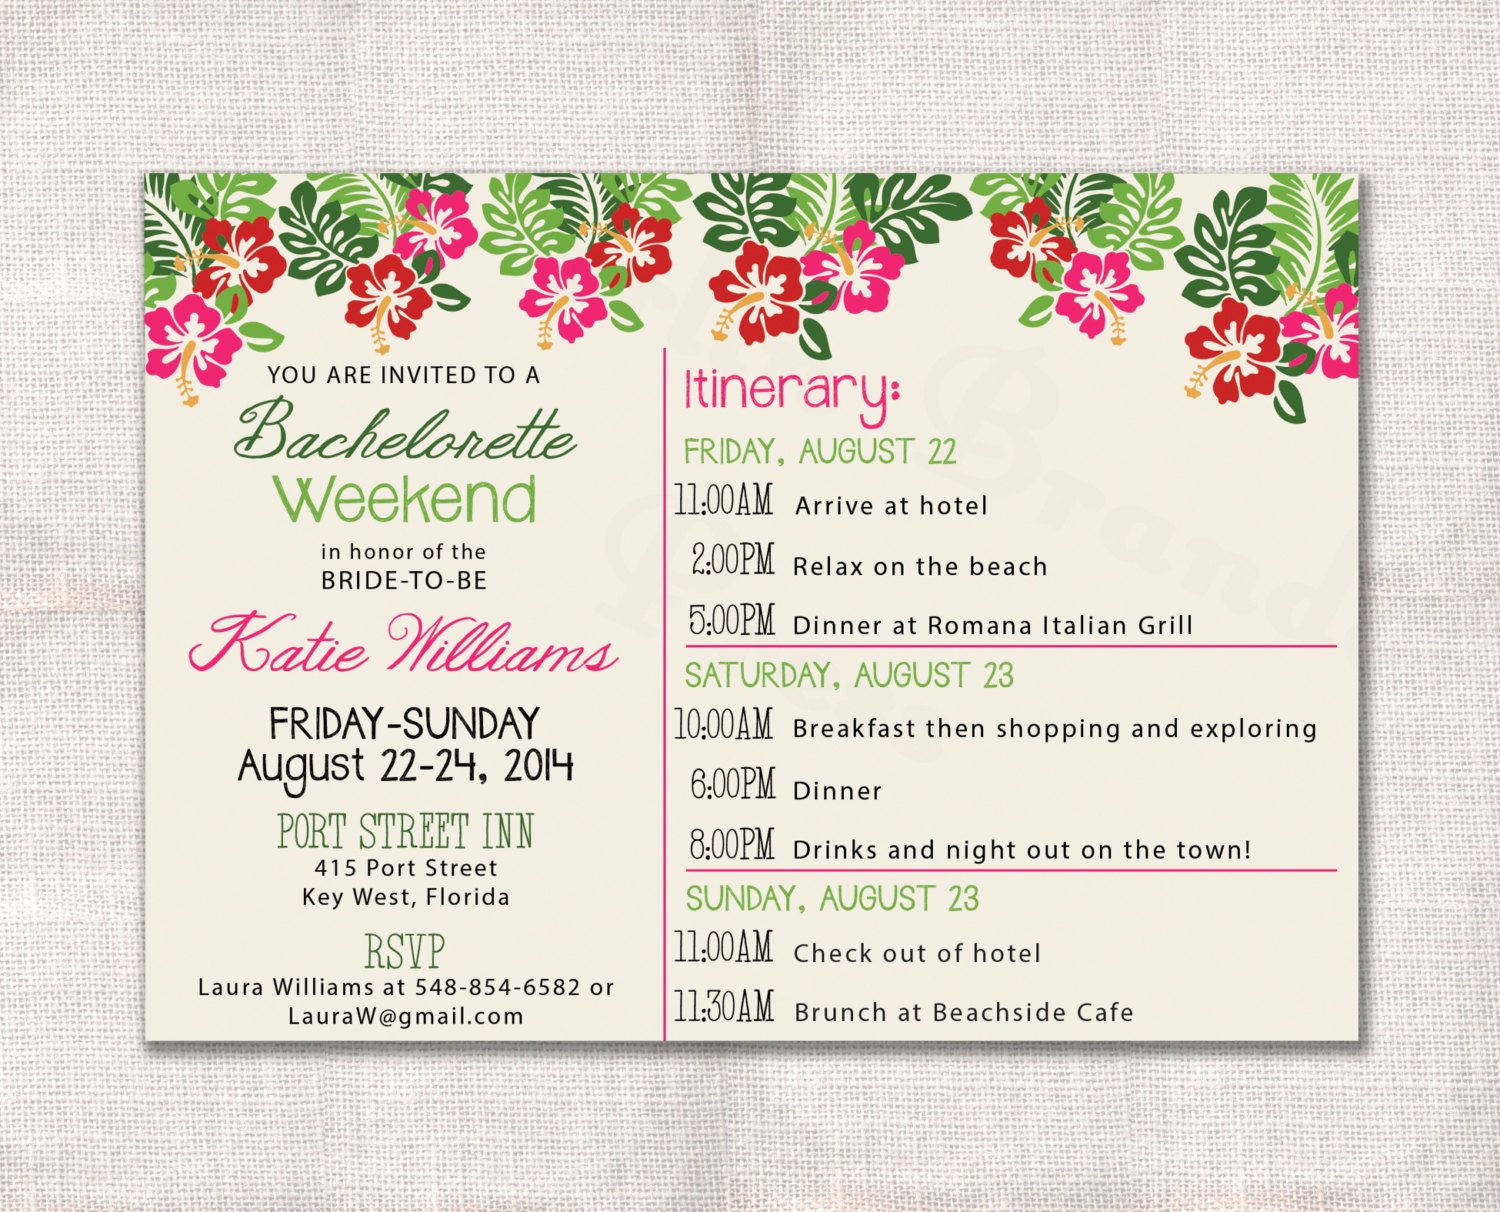 Free Bachelorette Itinerary Template Luxury Bachelorette Party Weekend Invitation and Itinerary Custom